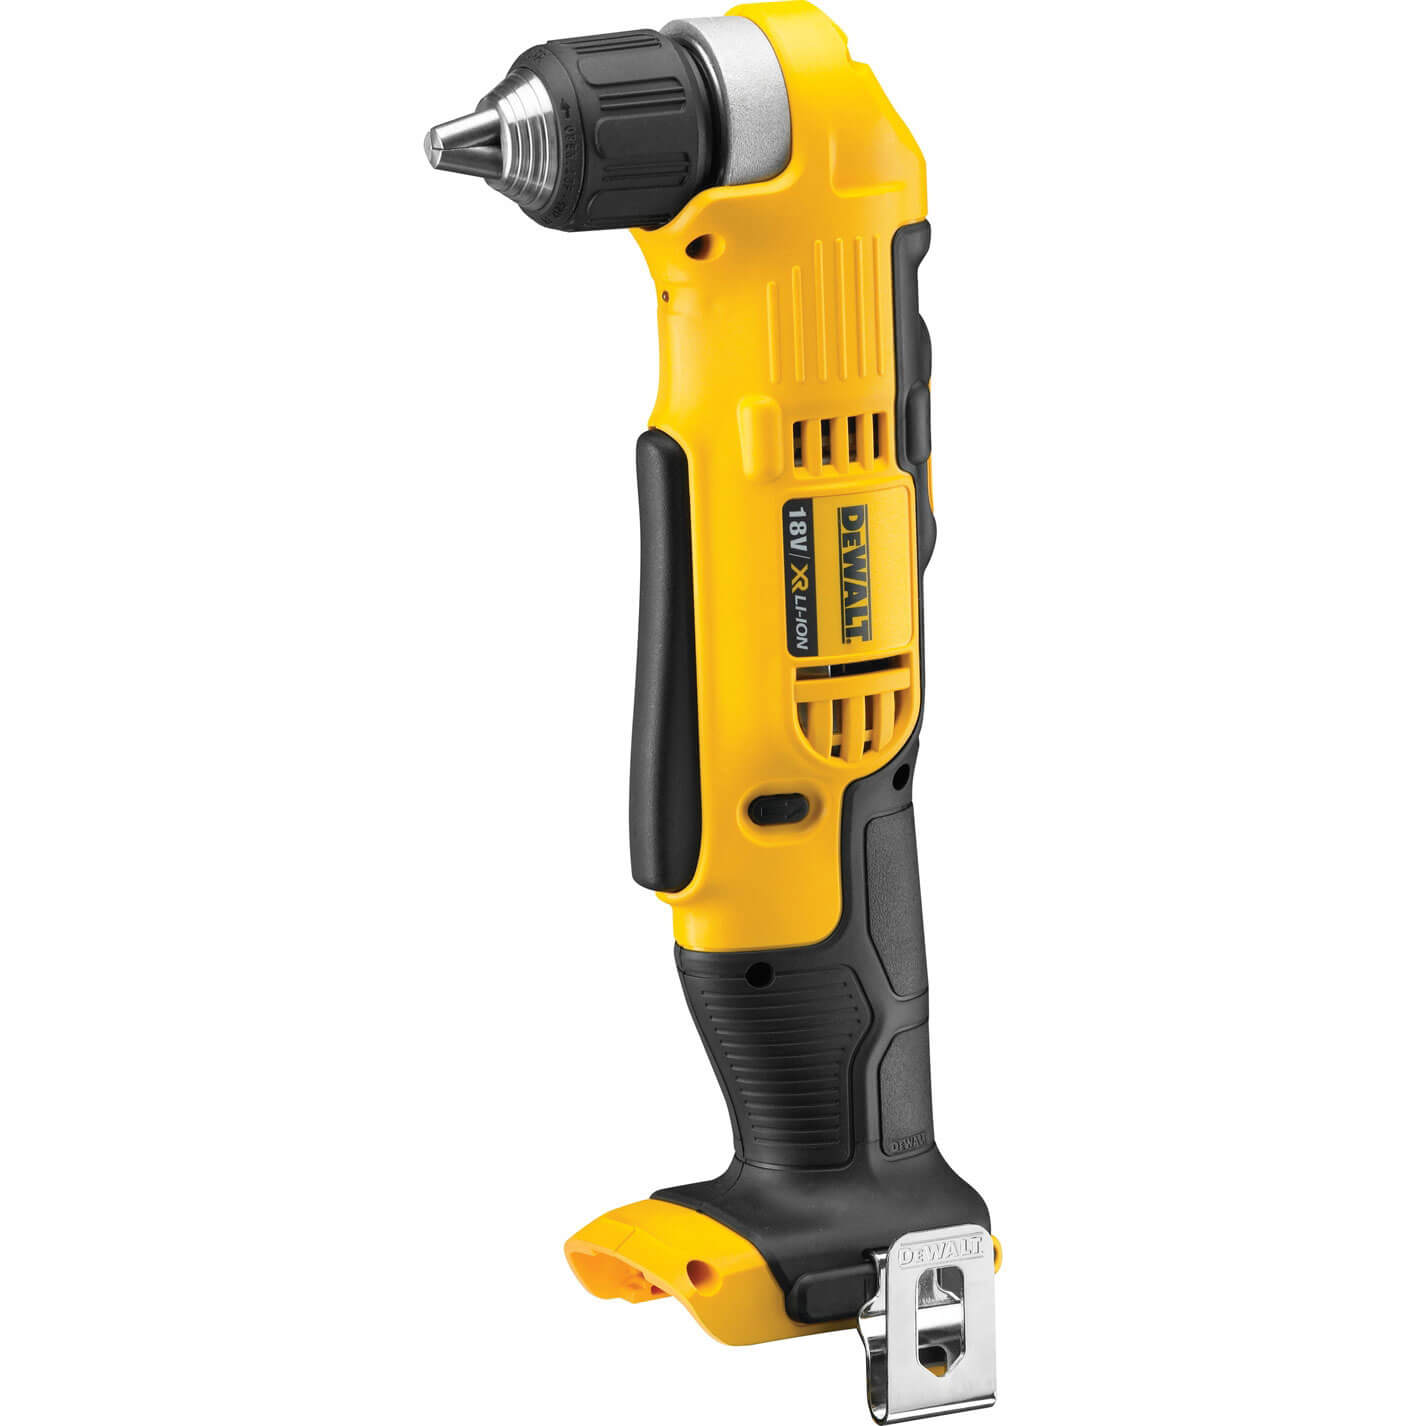 DeWalt DCD740N 18v Cordless Li-ion XR Right Angle Drill without Battery or Charger